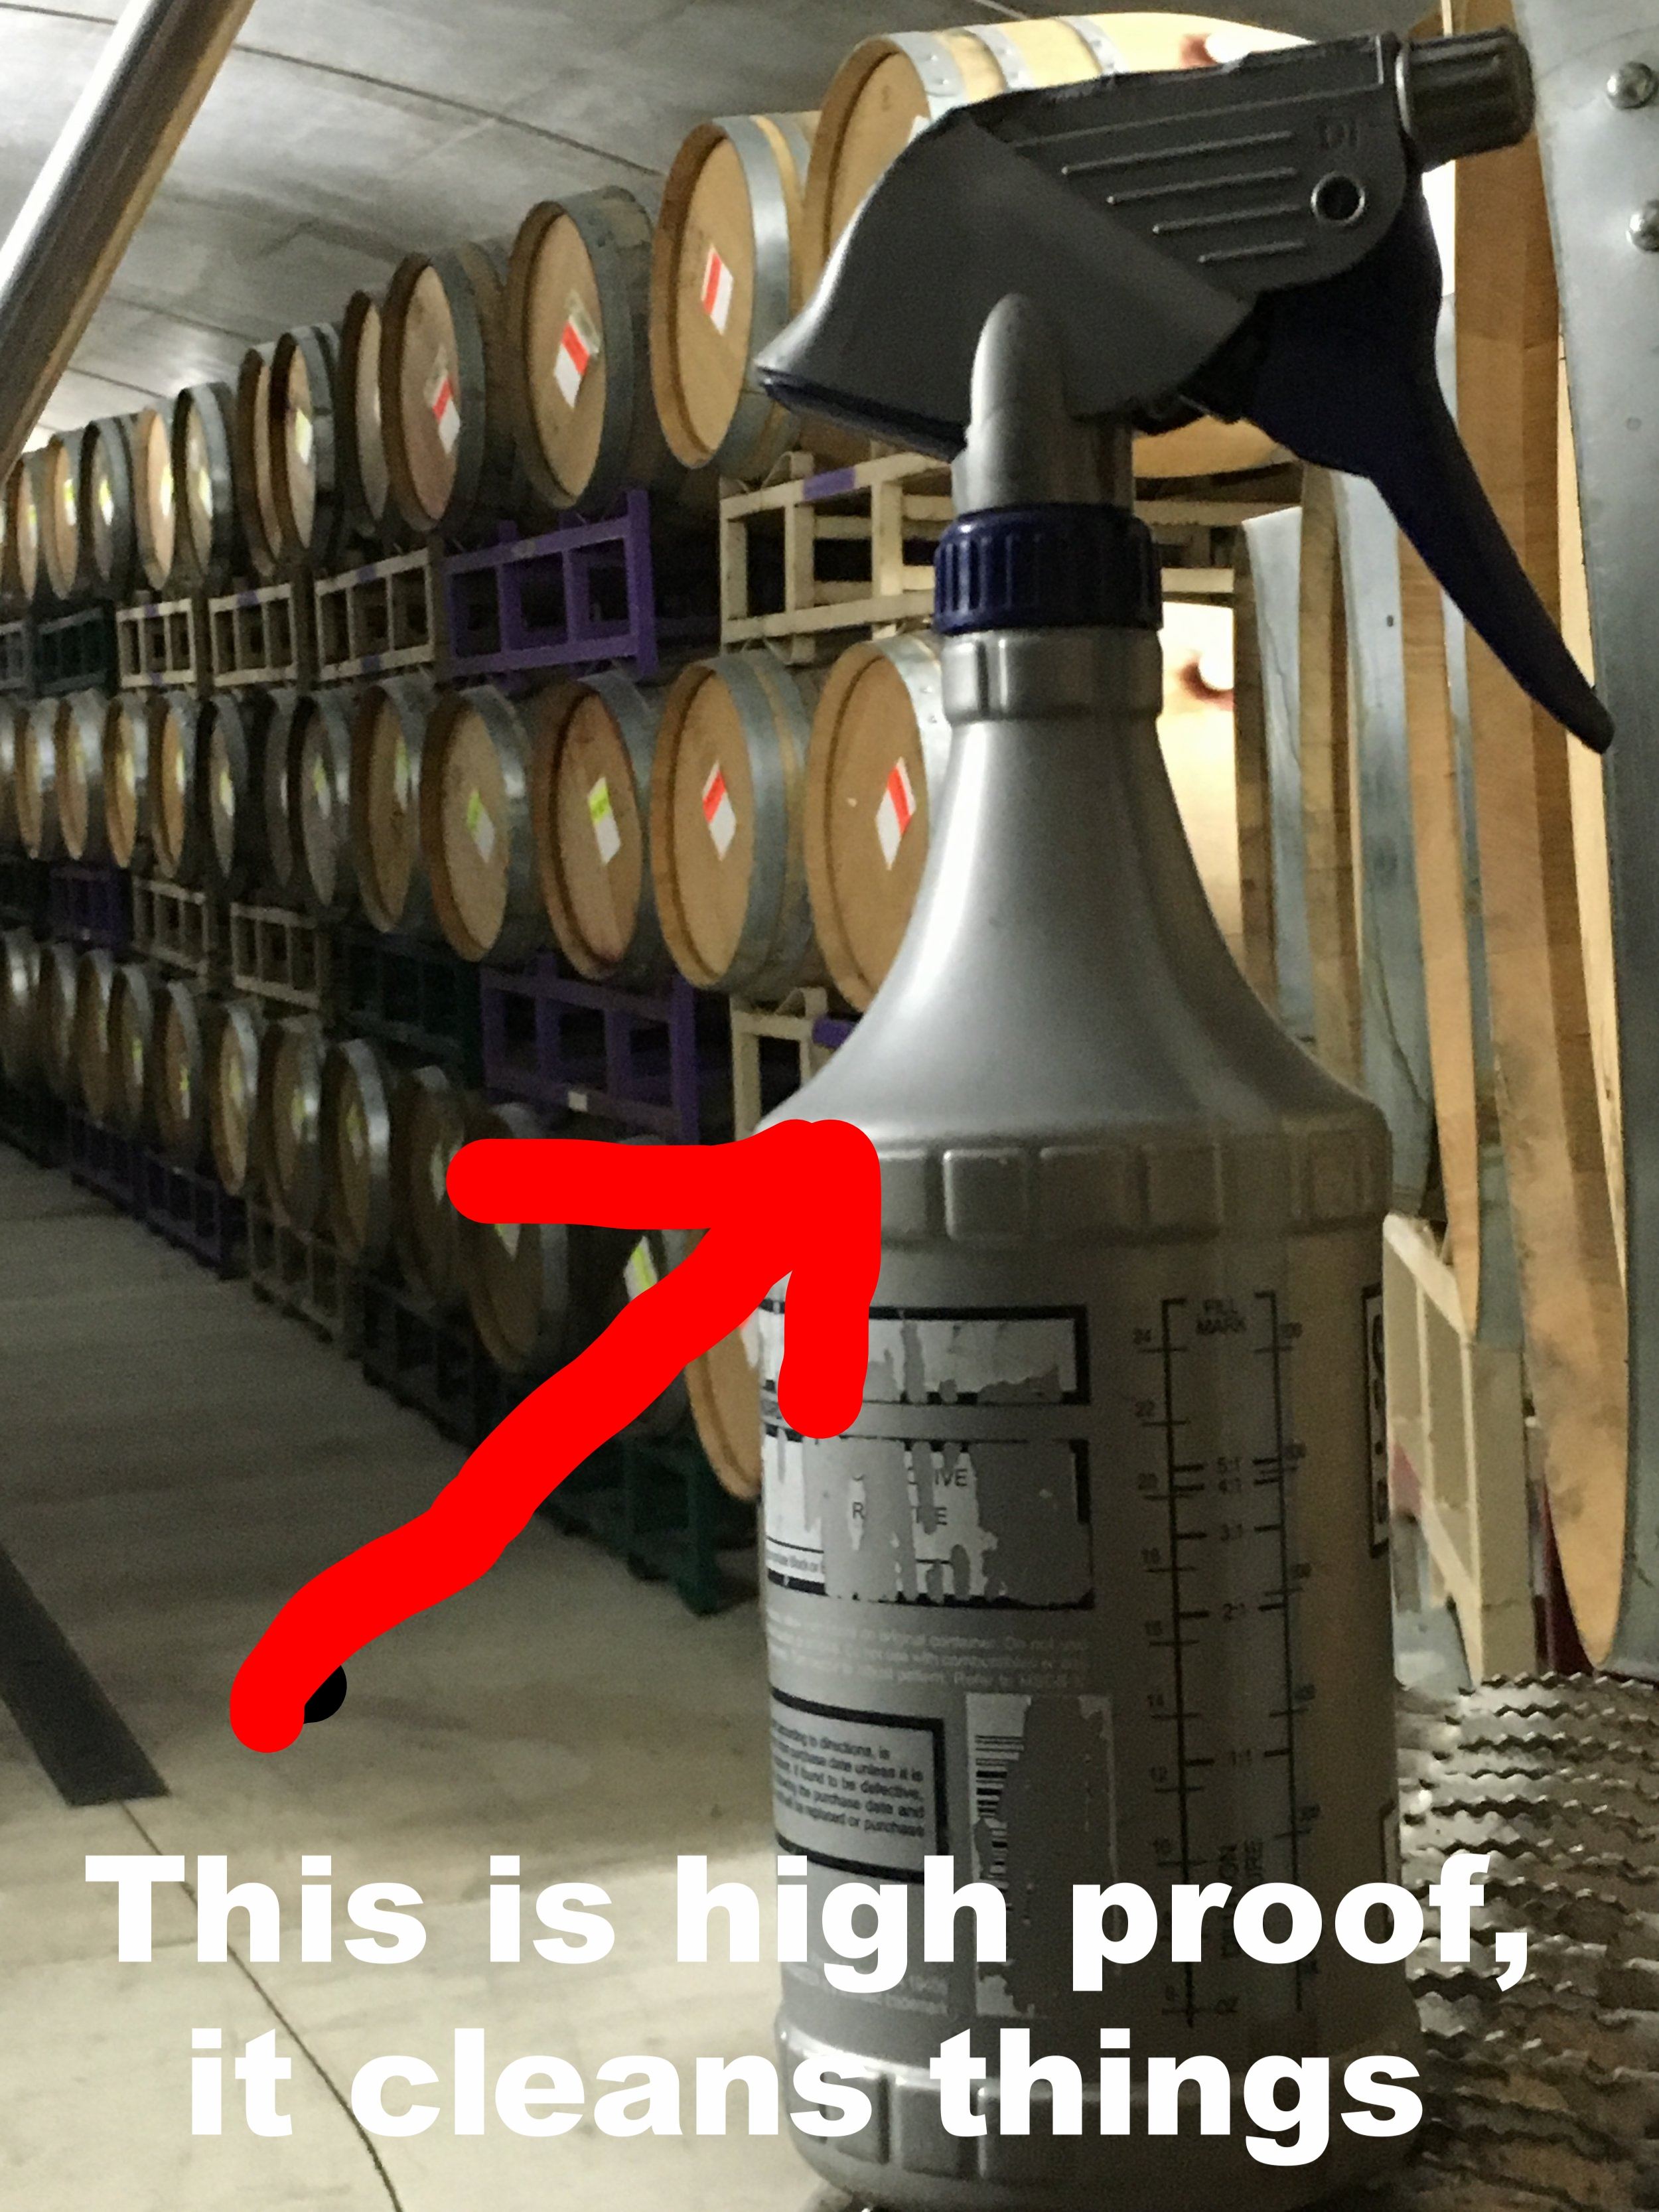 High proof alcohol cleans things